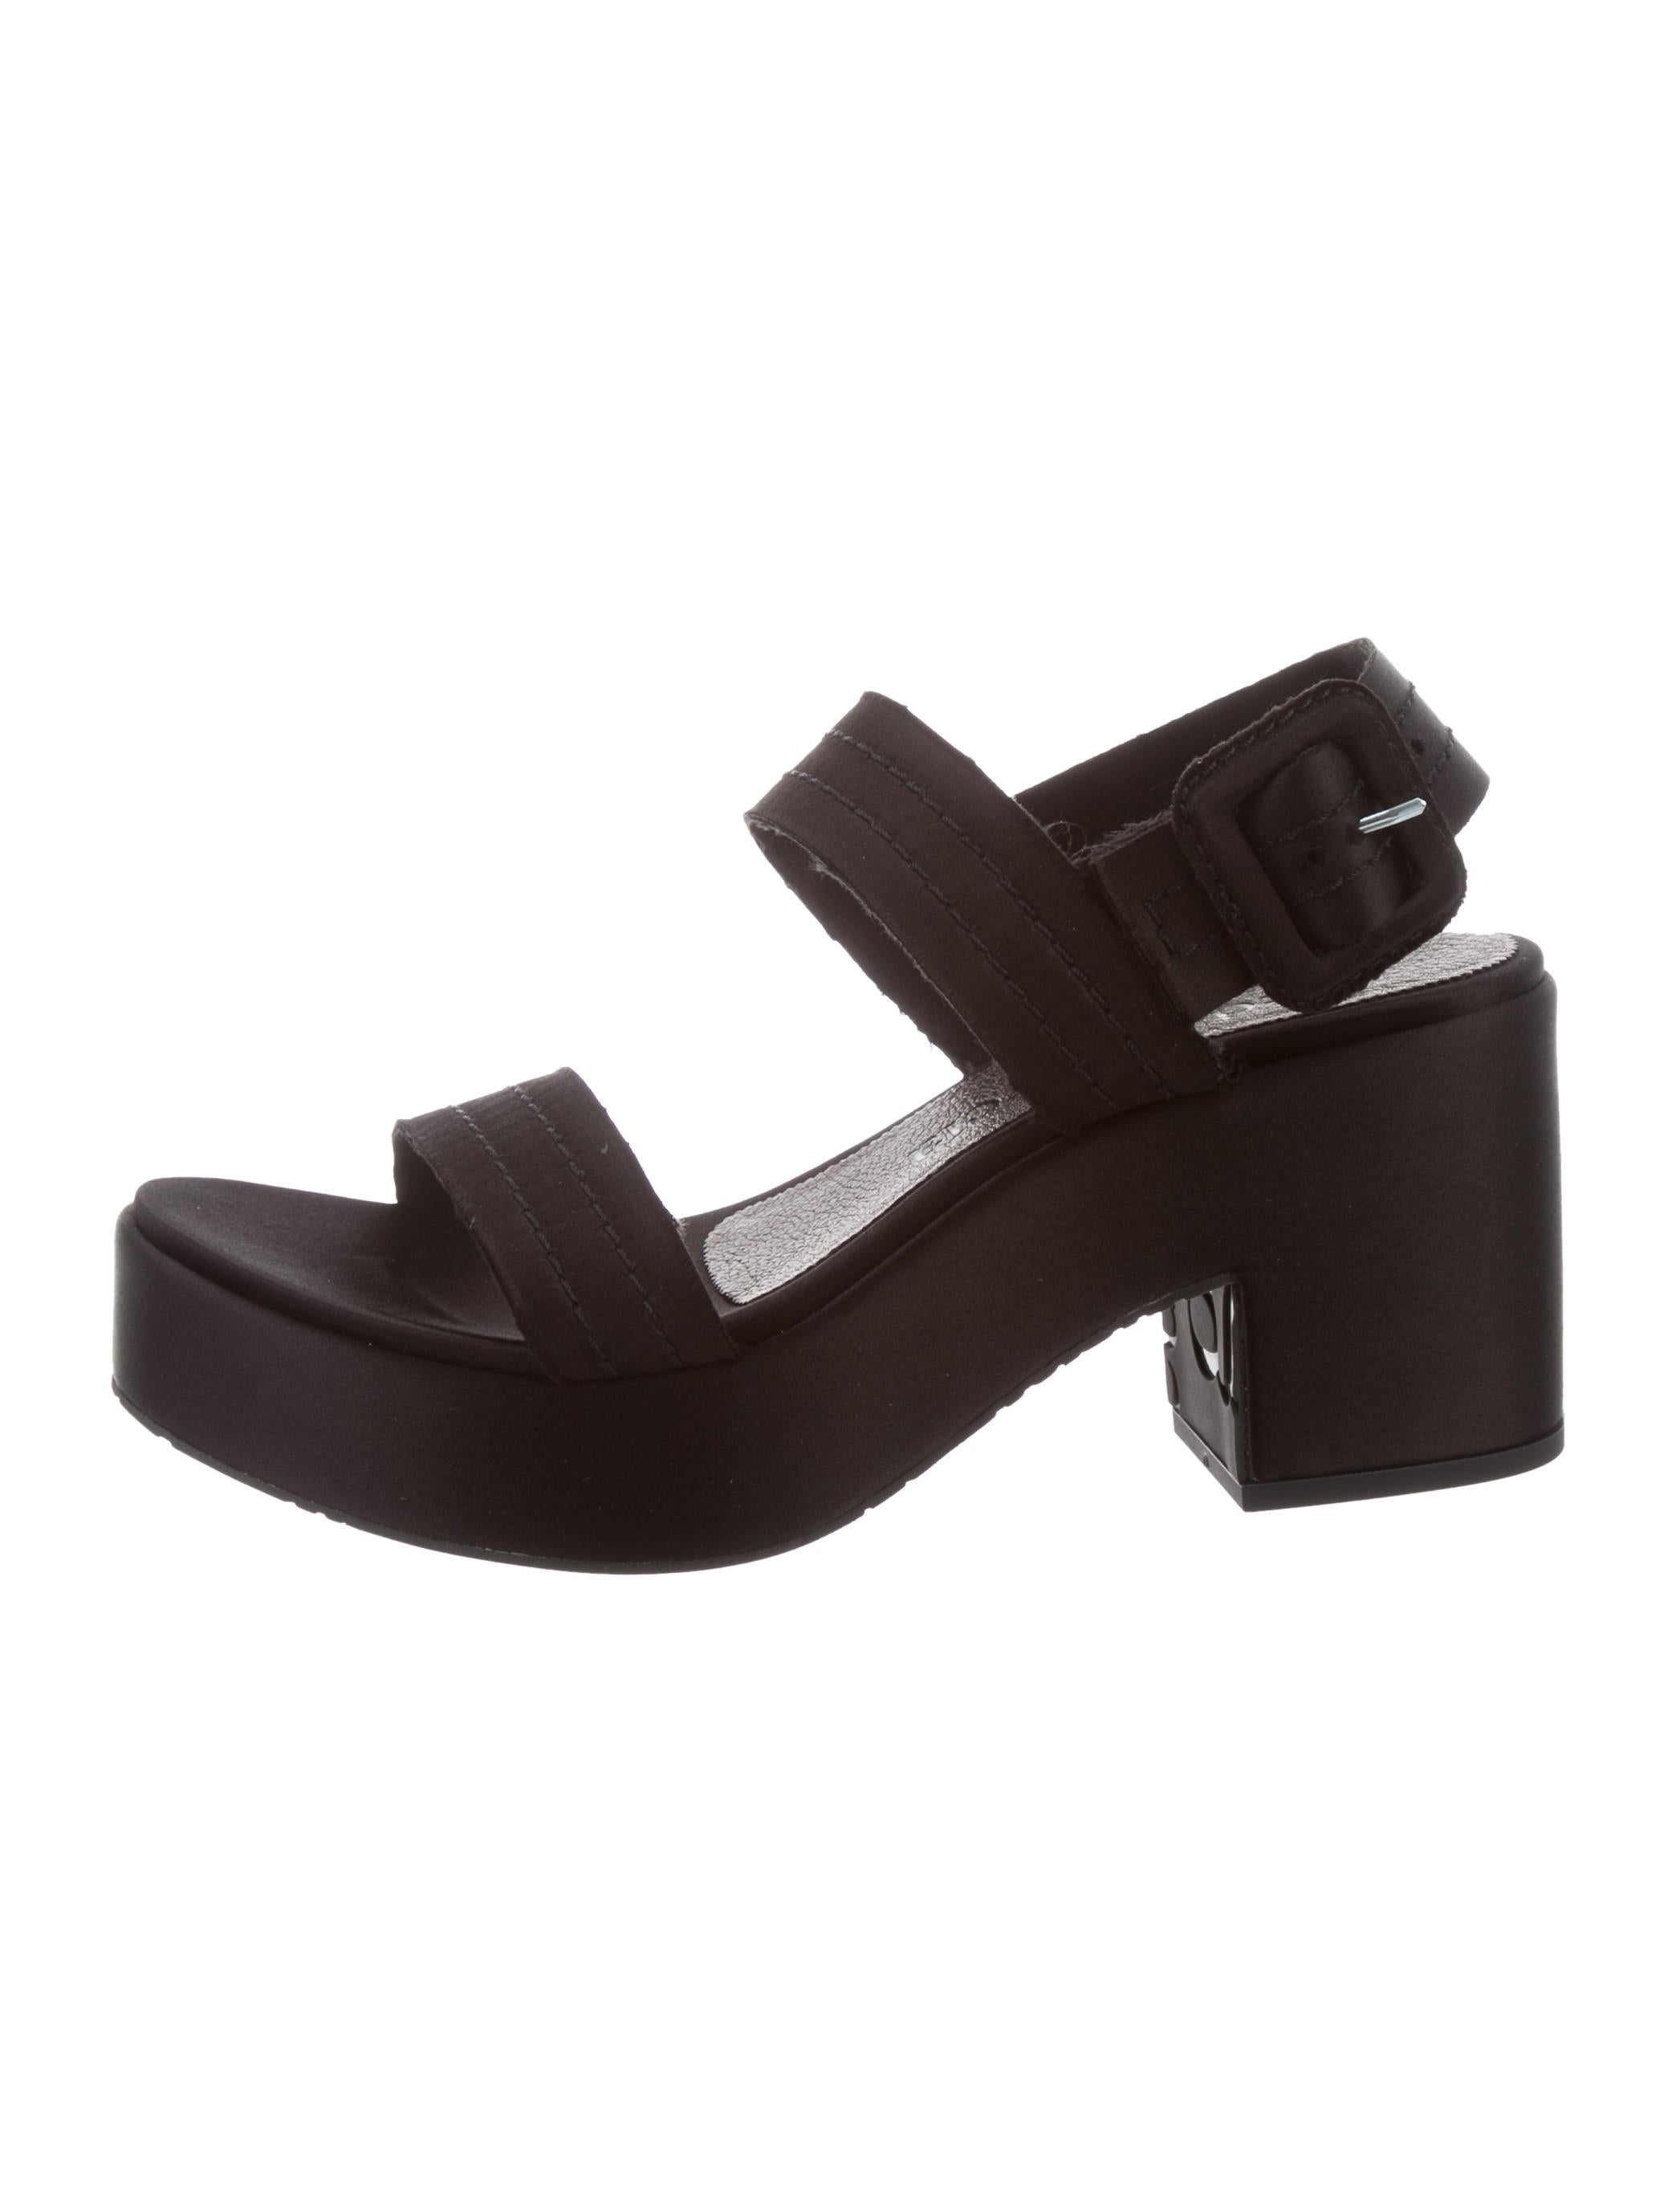 cheap sale footlocker Pedro Garcia Decima Platform Sandals w/ Tags clearance pay with paypal ugd02b1pK